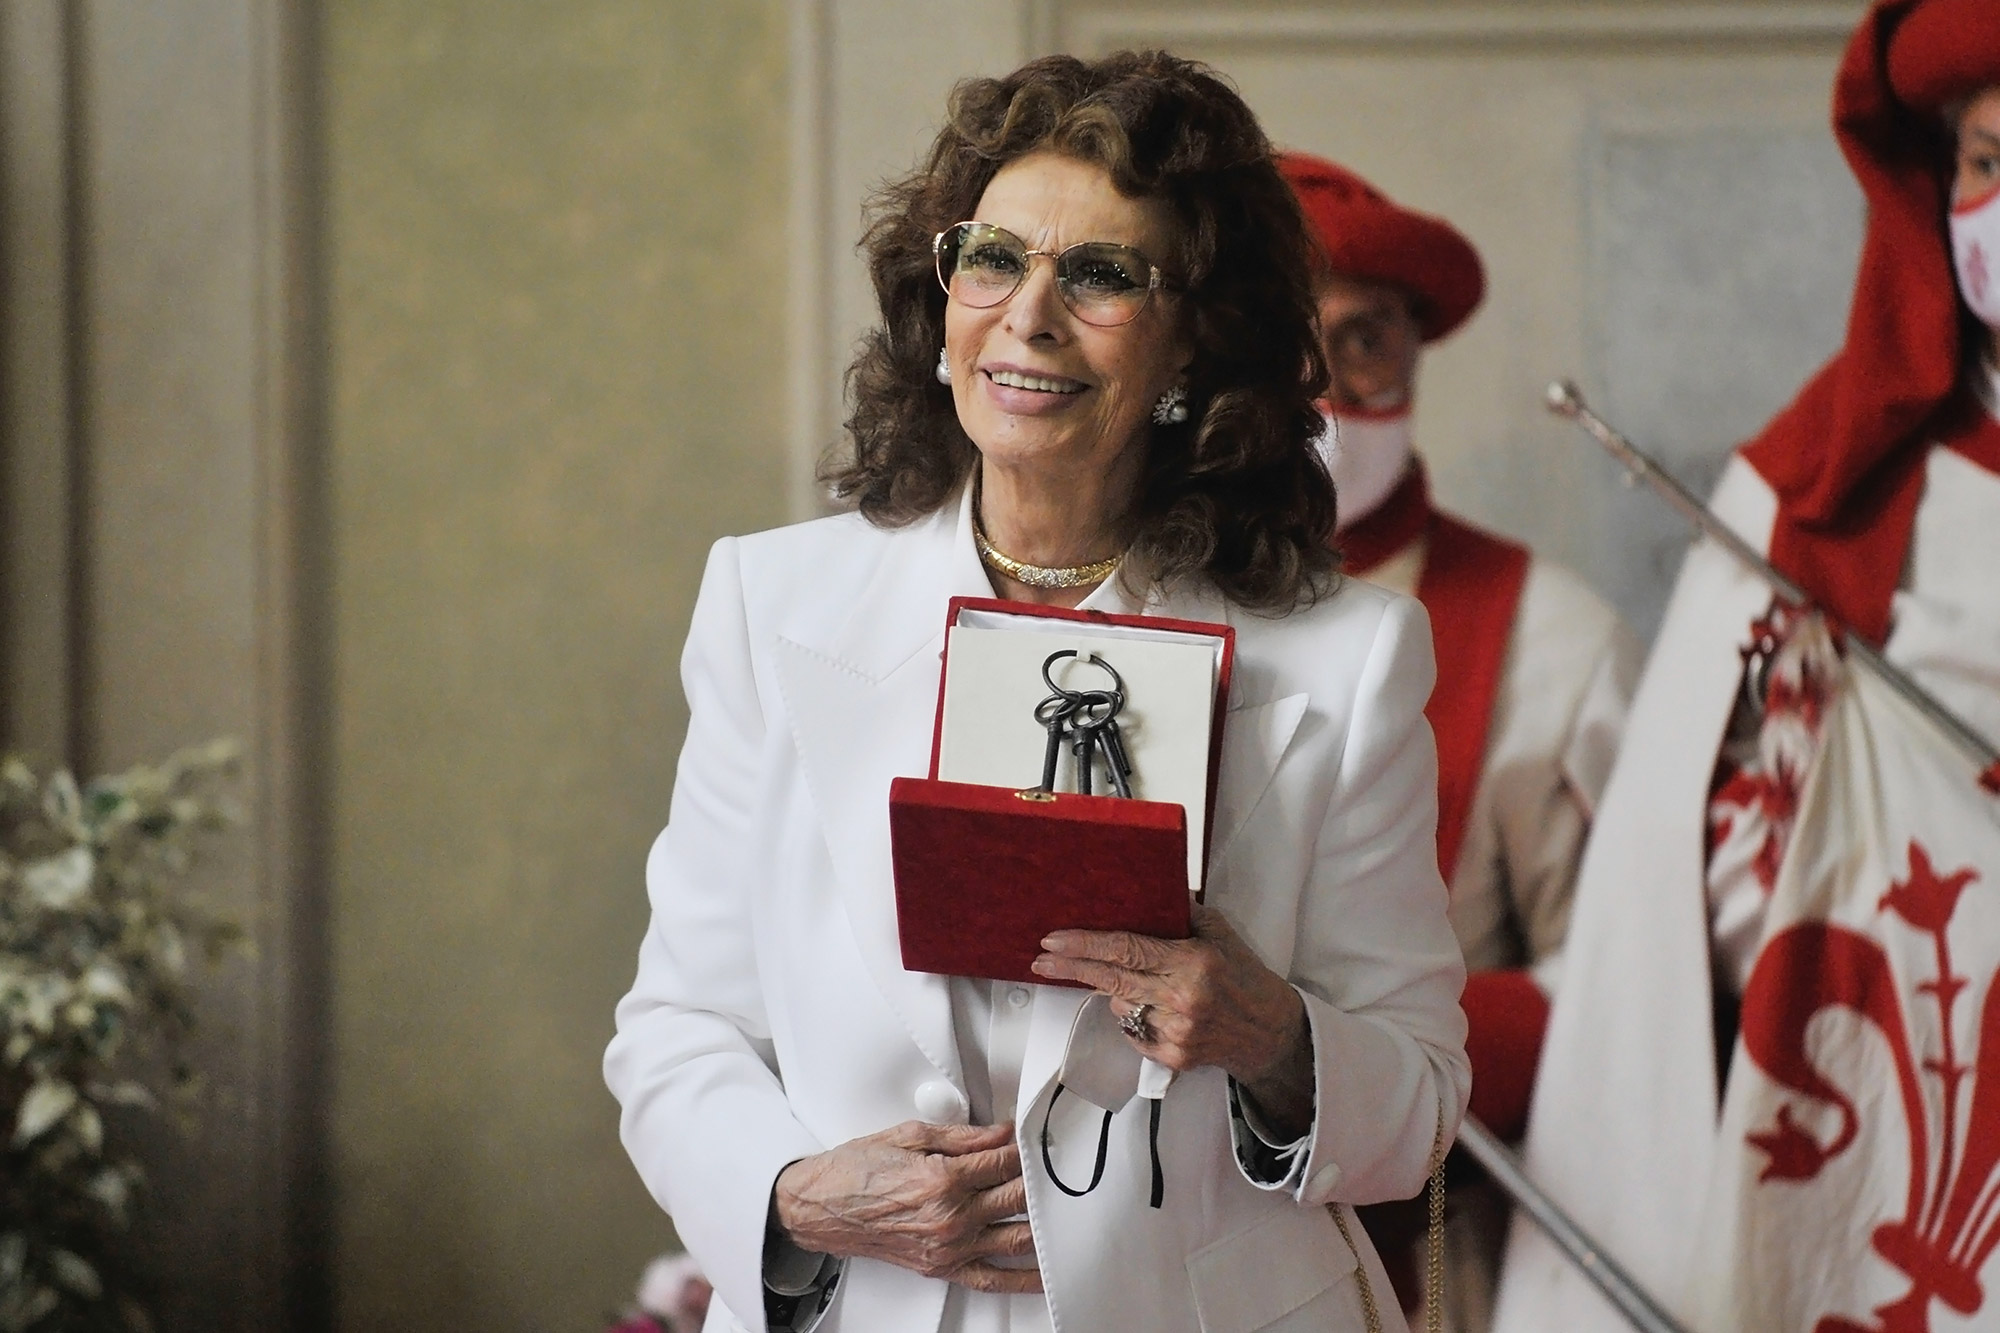 Sophia Loren receives the keys of the city of Florence on June 5, 2021 in Palazo Vecchio in Florence, Italy